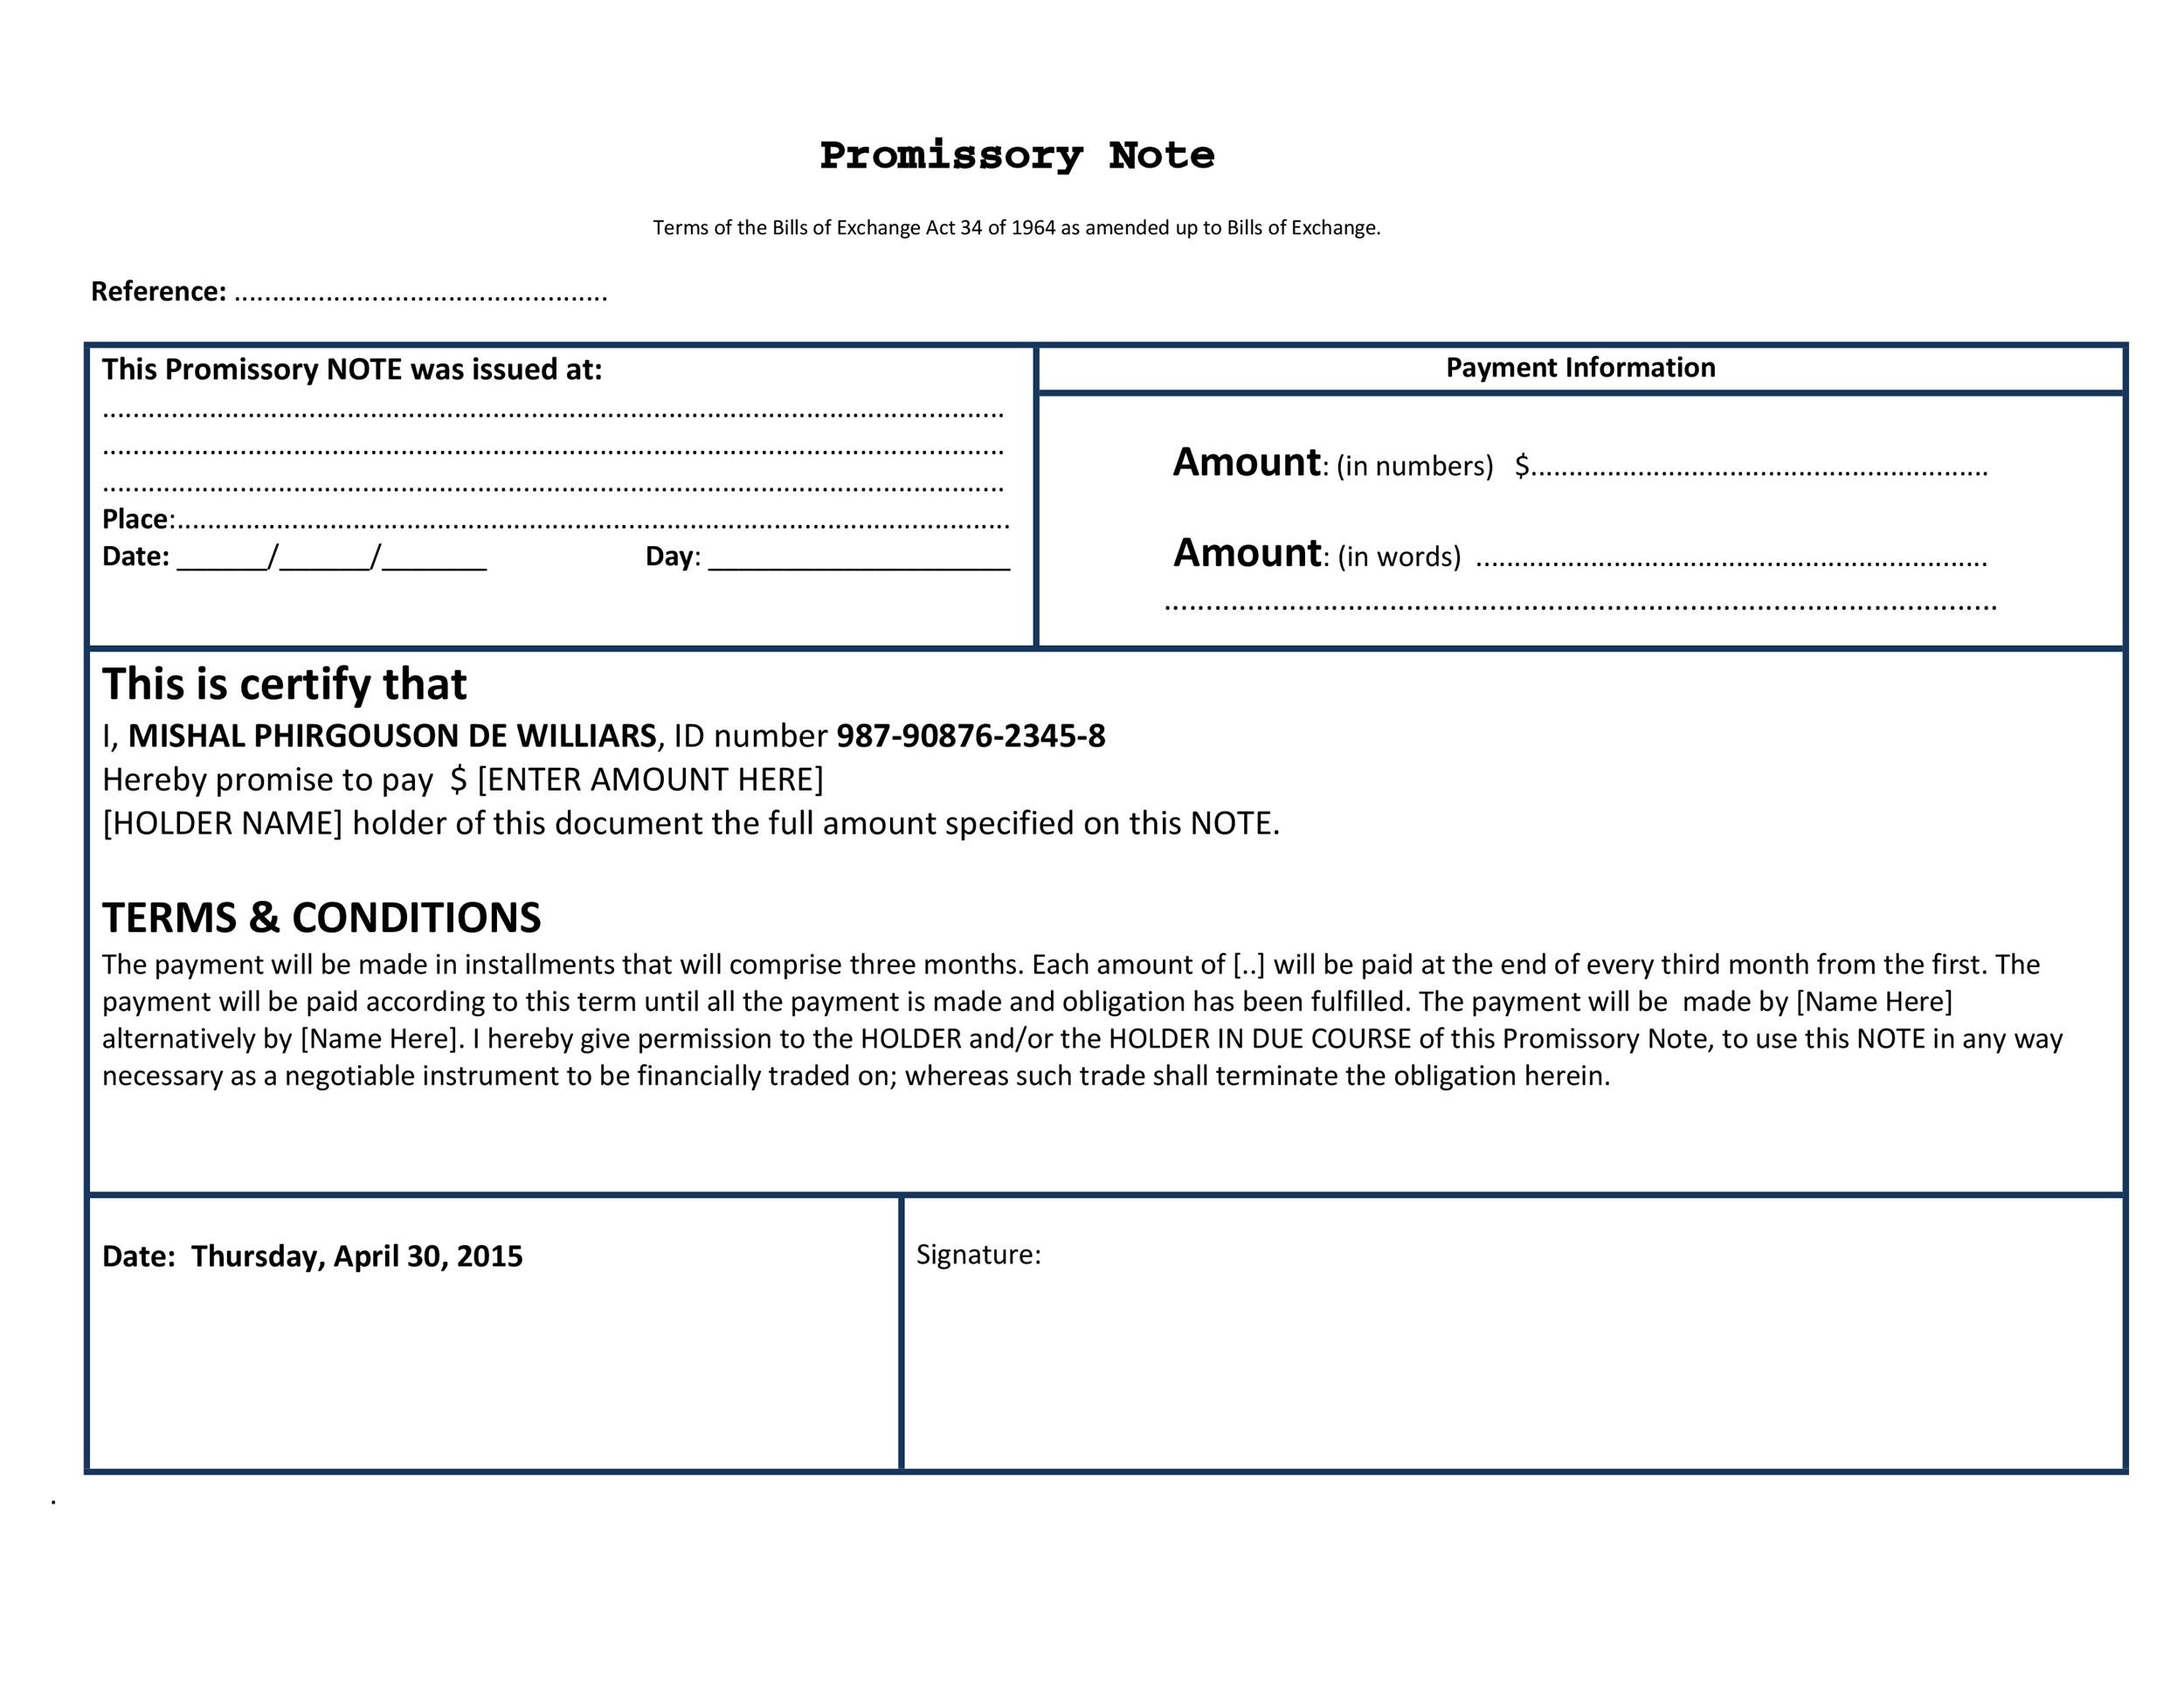 45 FREE Promissory Note Templates  Forms Word  PDF - Template Lab - promisory note sample